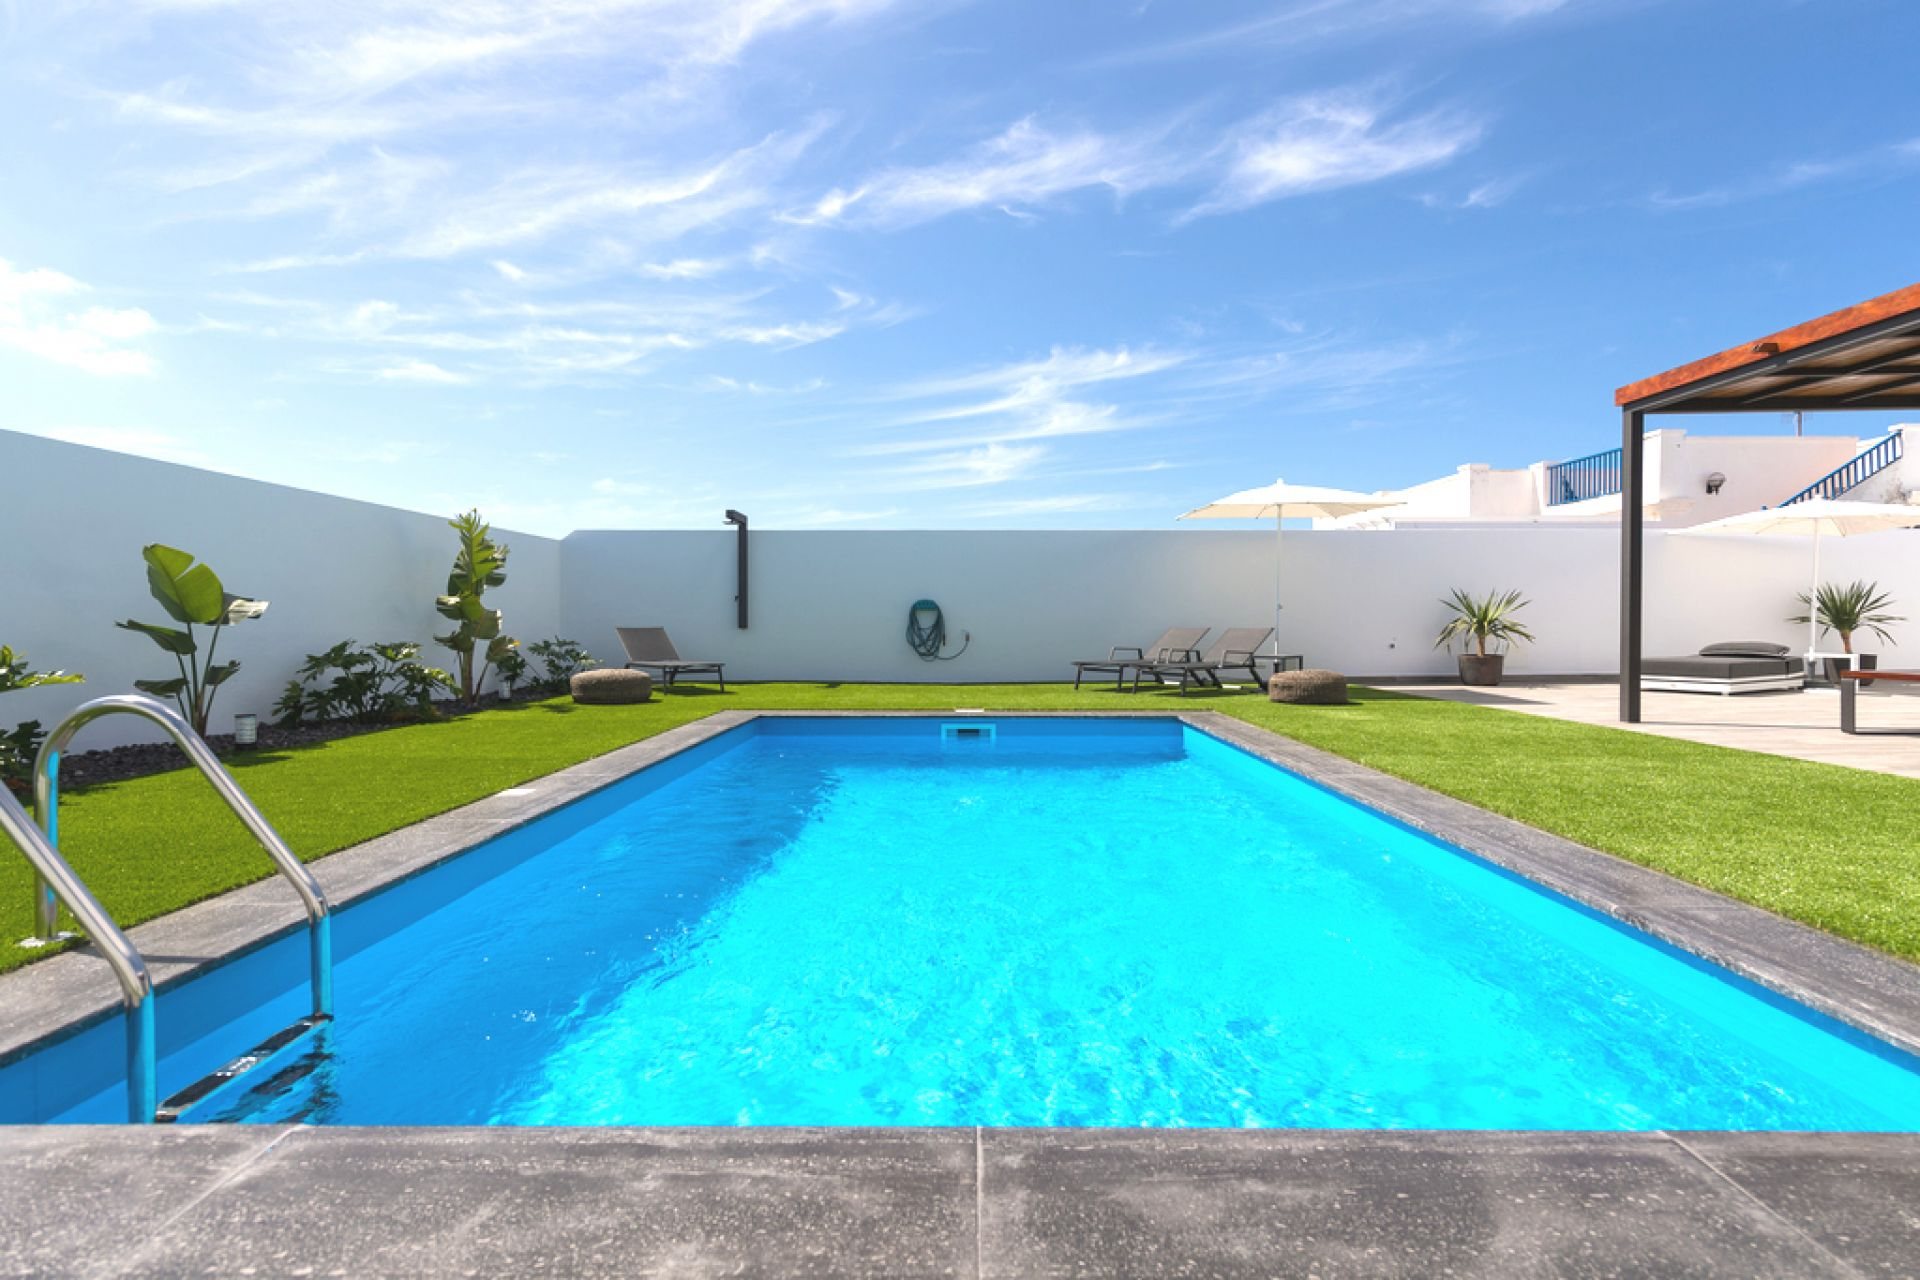 Ferienhaus Mit Pool Lanzarote Mt Villa Mit Privatem Pool In Playa Blanca Lanzarote